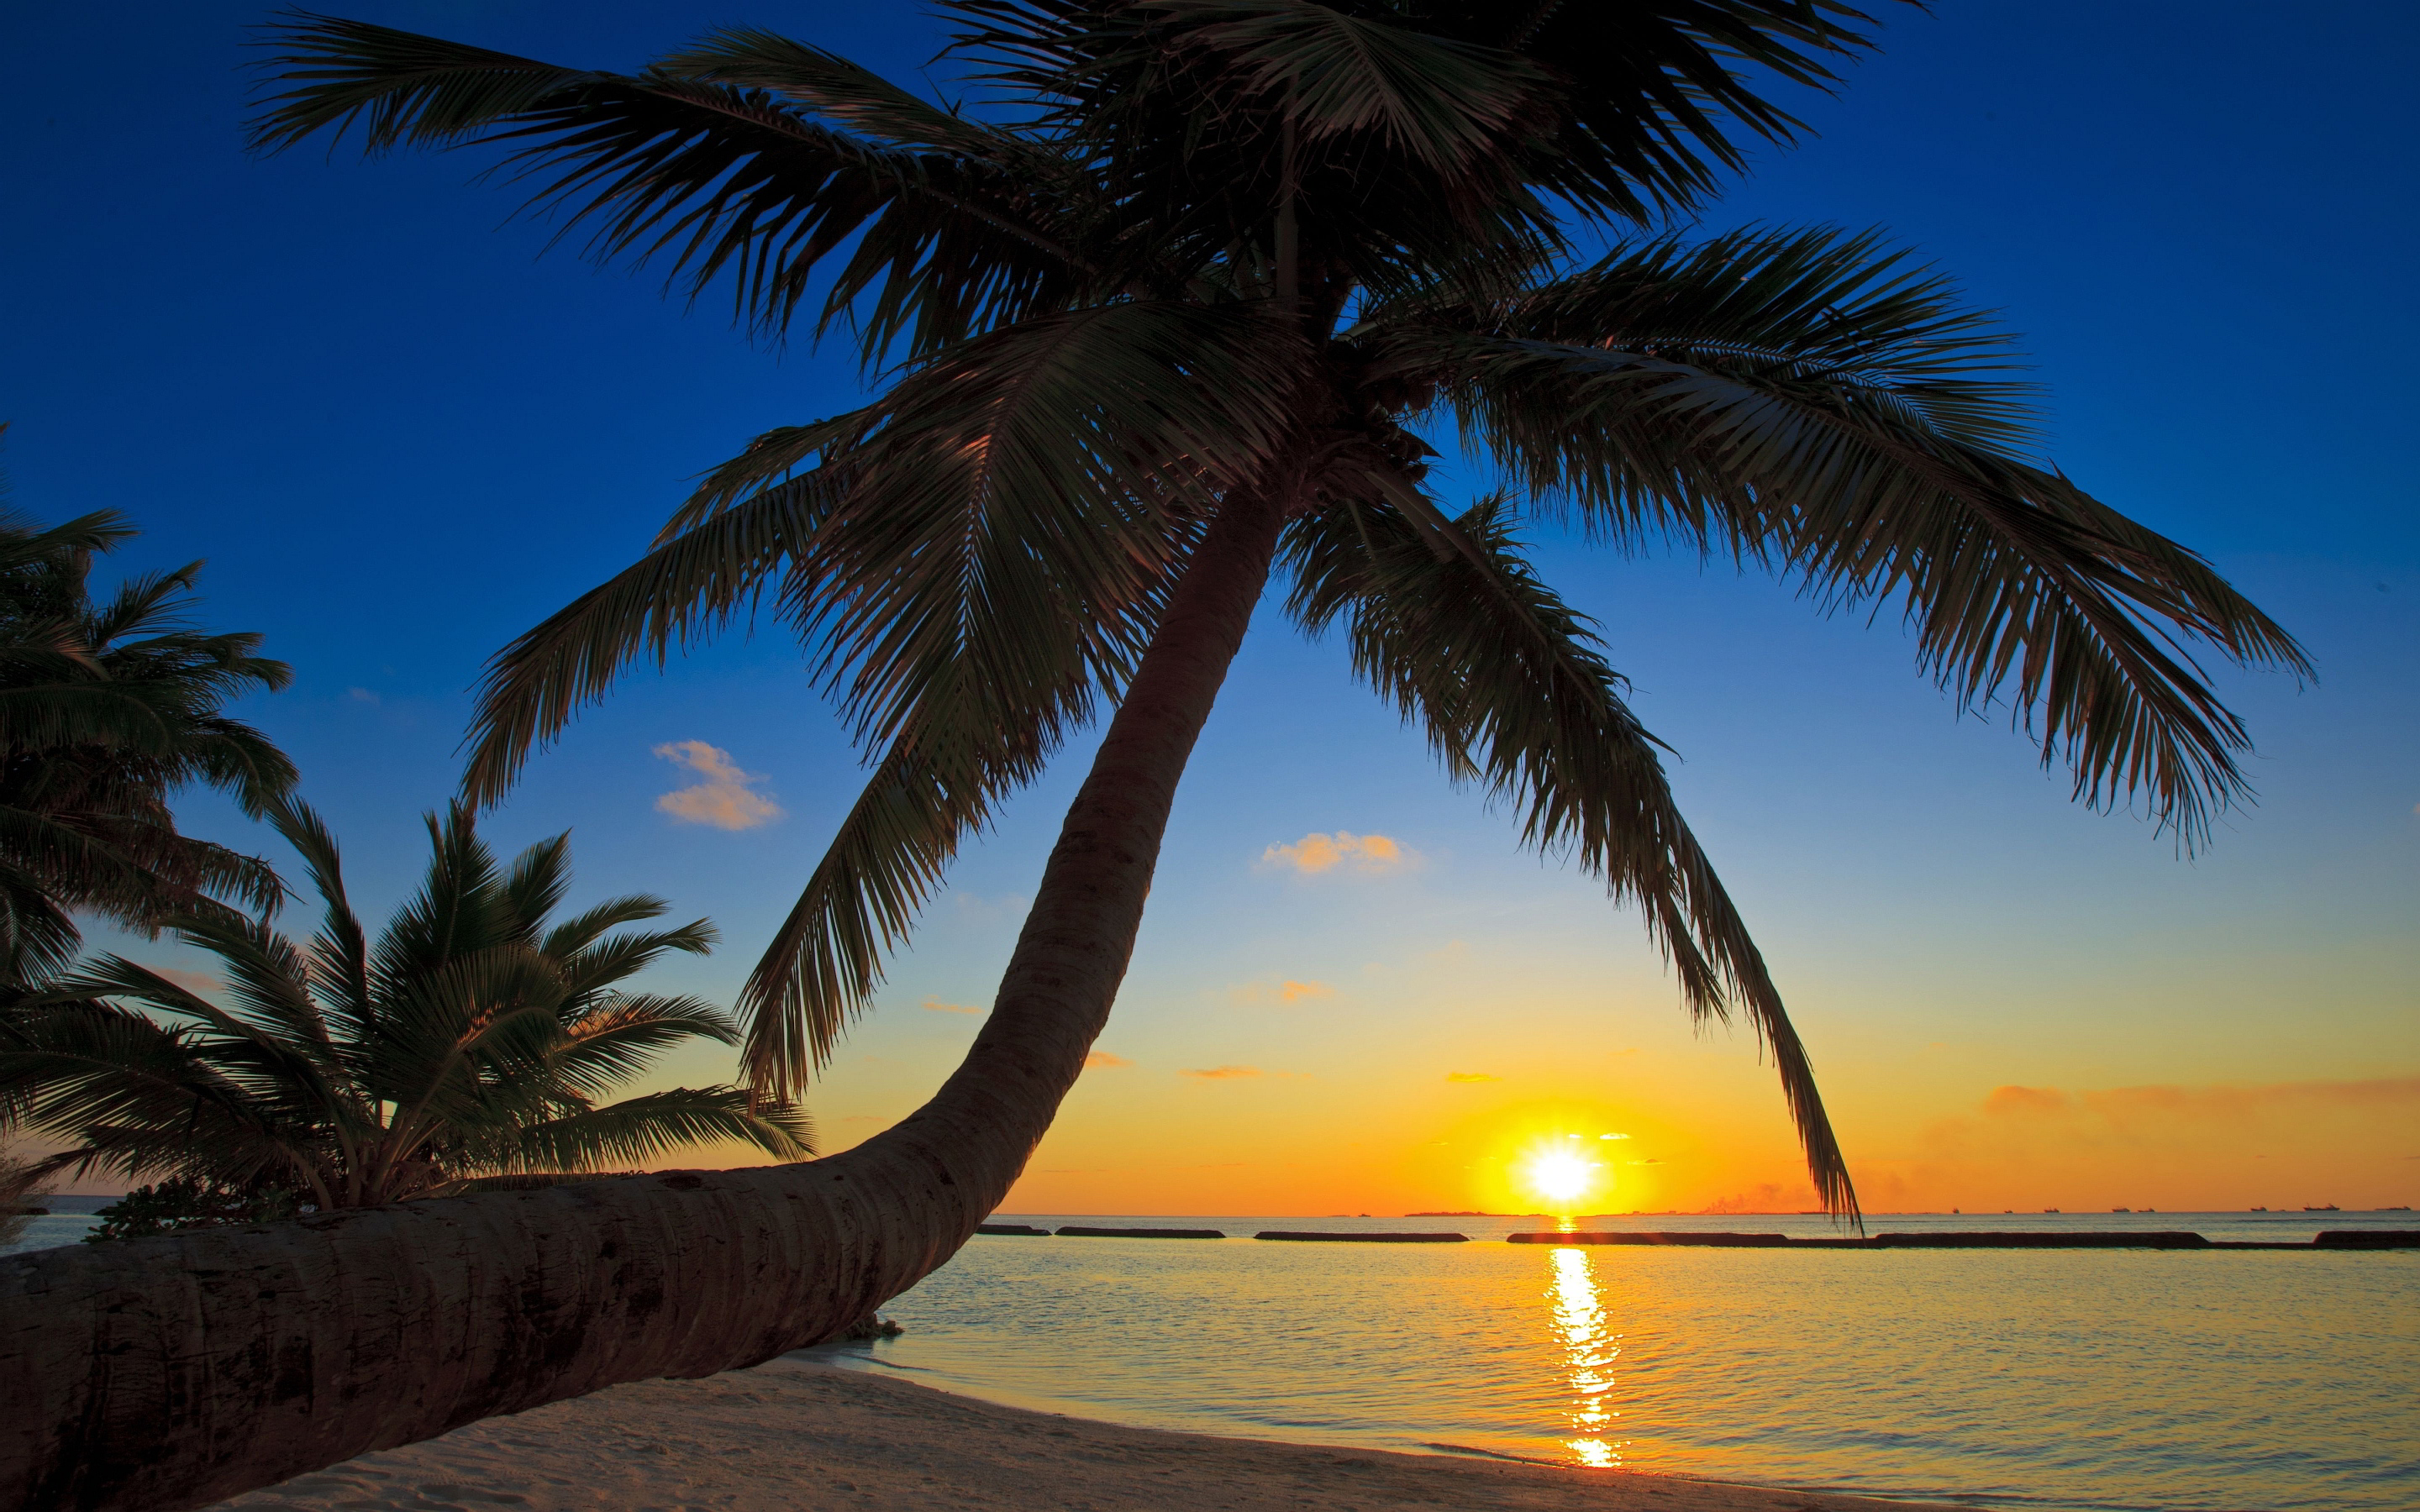 Sunset-Beach-with-coco-palm